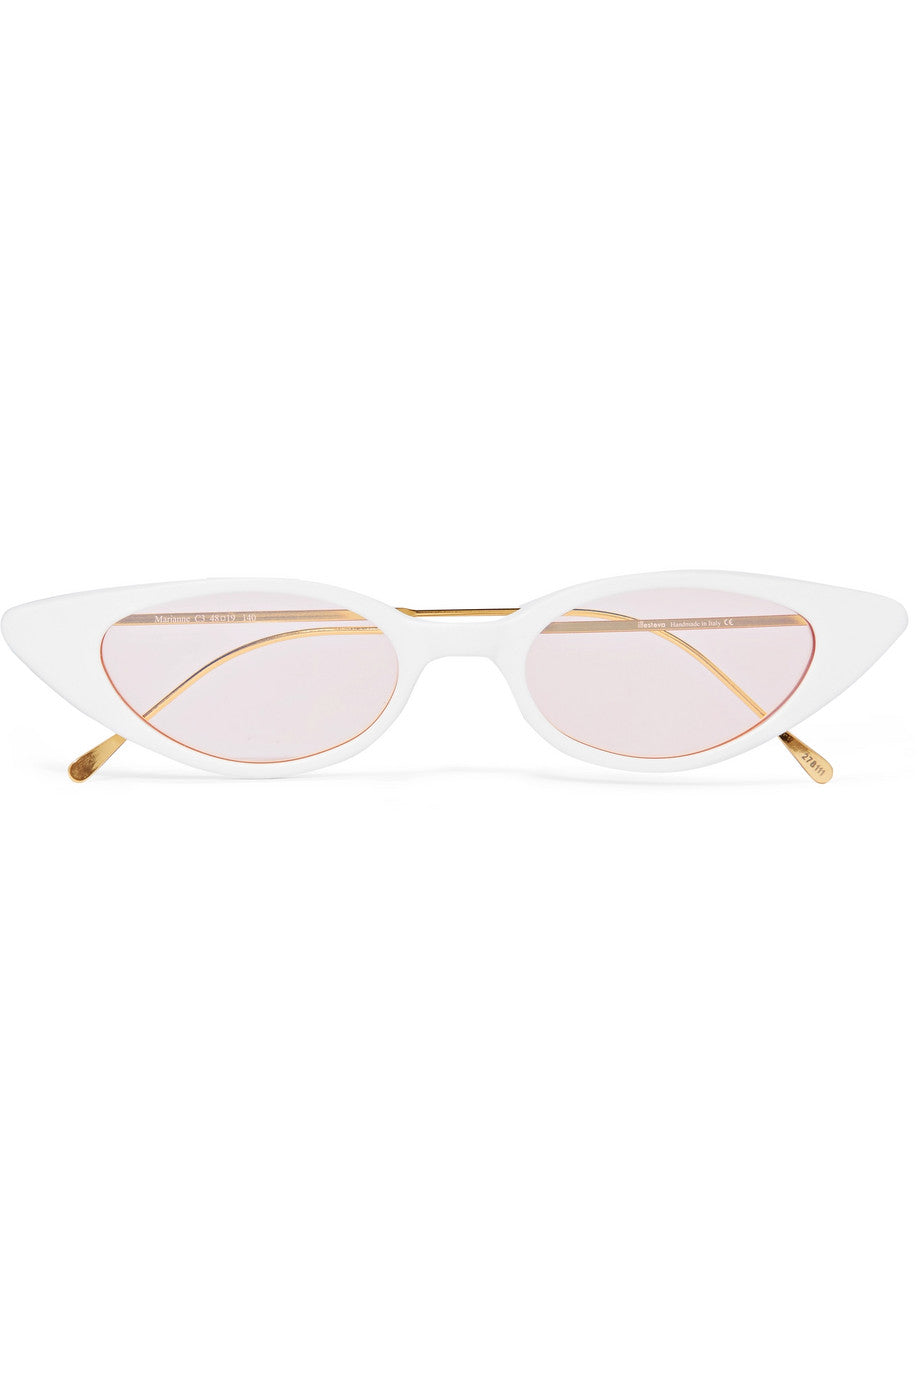 ILLESTEVA -Marianne cat-eye acetate and gold-tone sunglasses